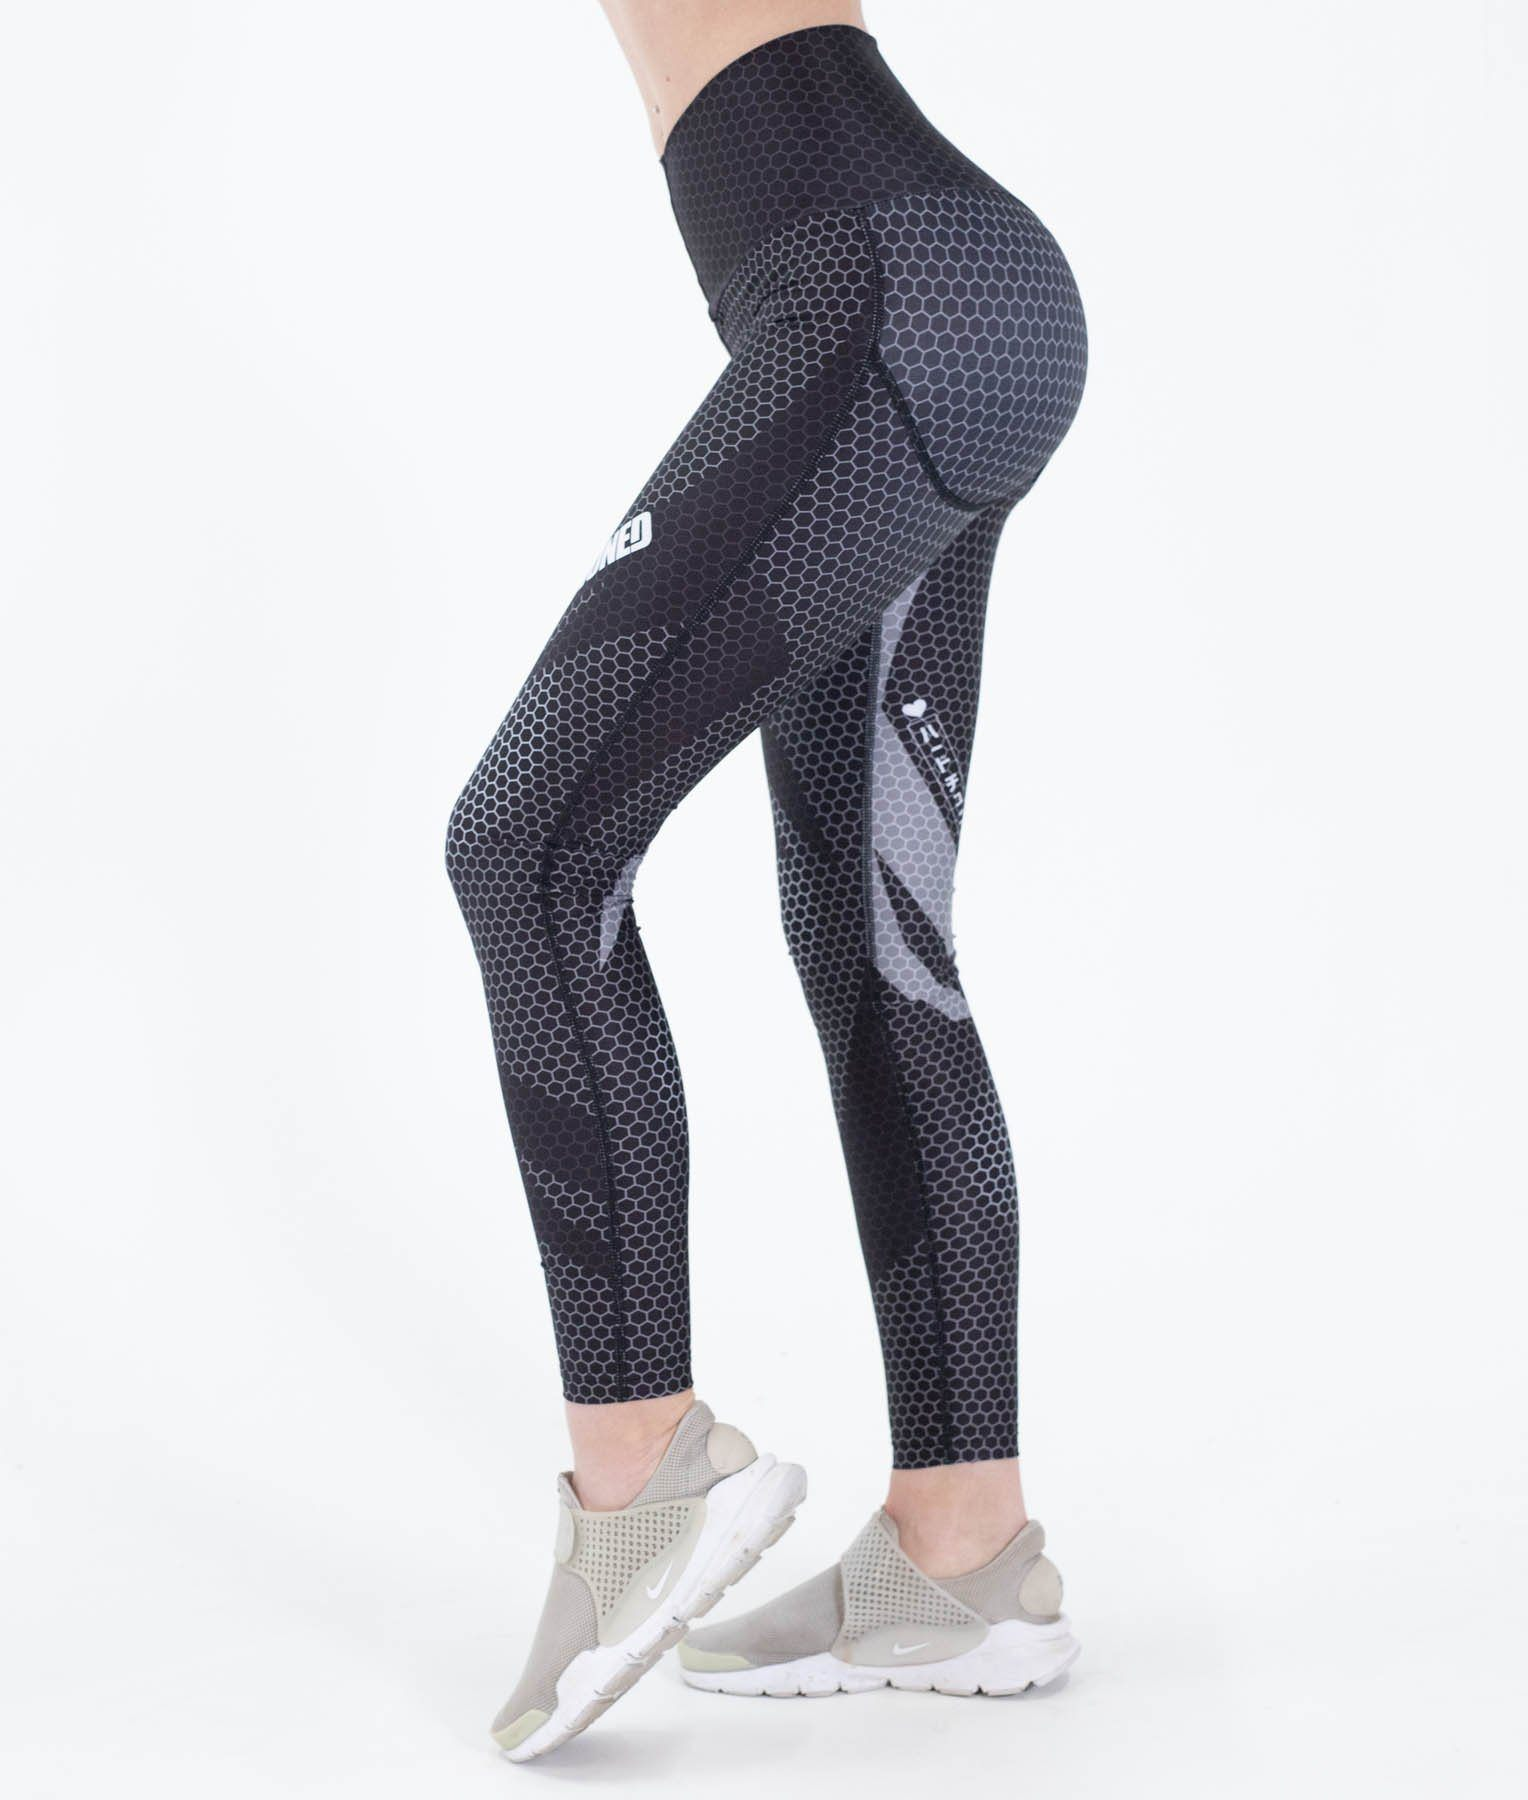 Leggings - Hex Contour Leggings